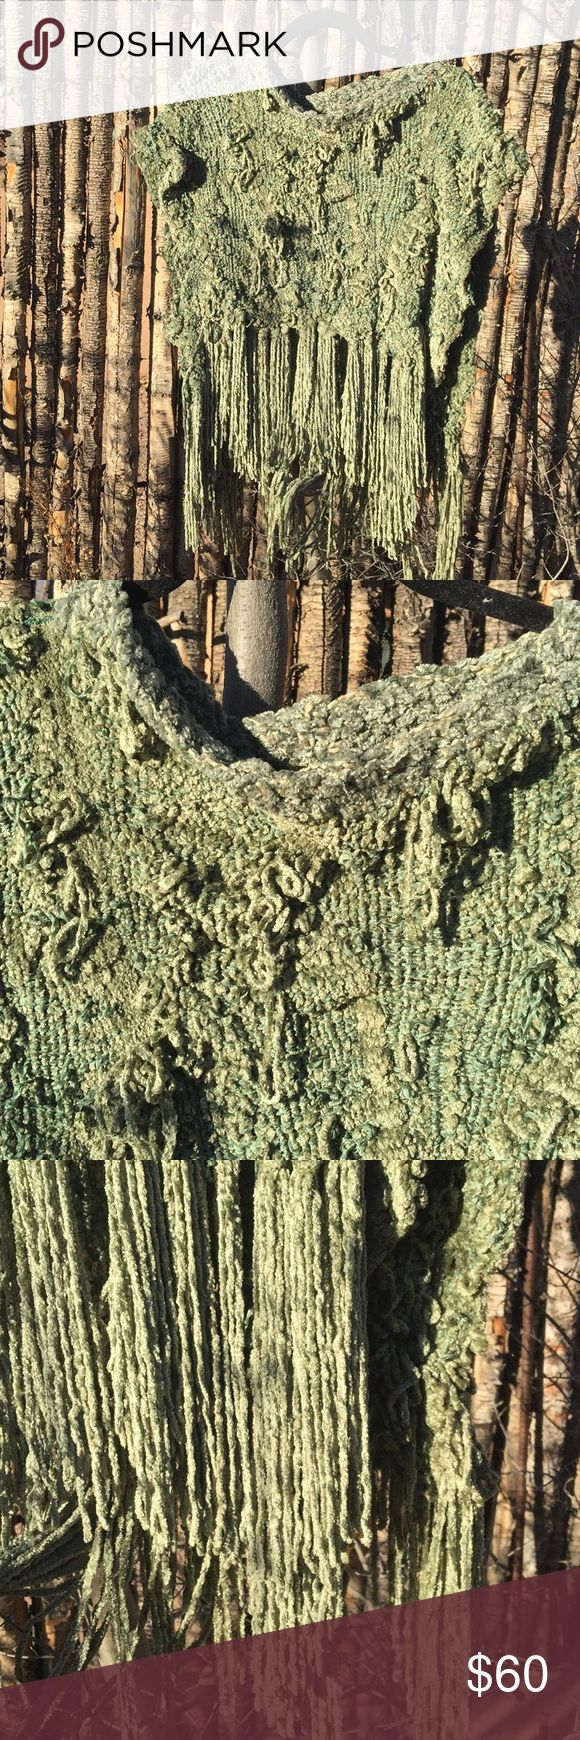 Beautiful Hand Woven Designer Sweater/poncho Hand woven designer open sided sweater/poncho. Lovely shades of aquamarine chenille. Soft and cozy. Open sides. 10 inch varied fringe. 14 Inches from Front Neck to beginning of fringe. 22 inches across open at sides Sweaters Shrugs & Ponchos